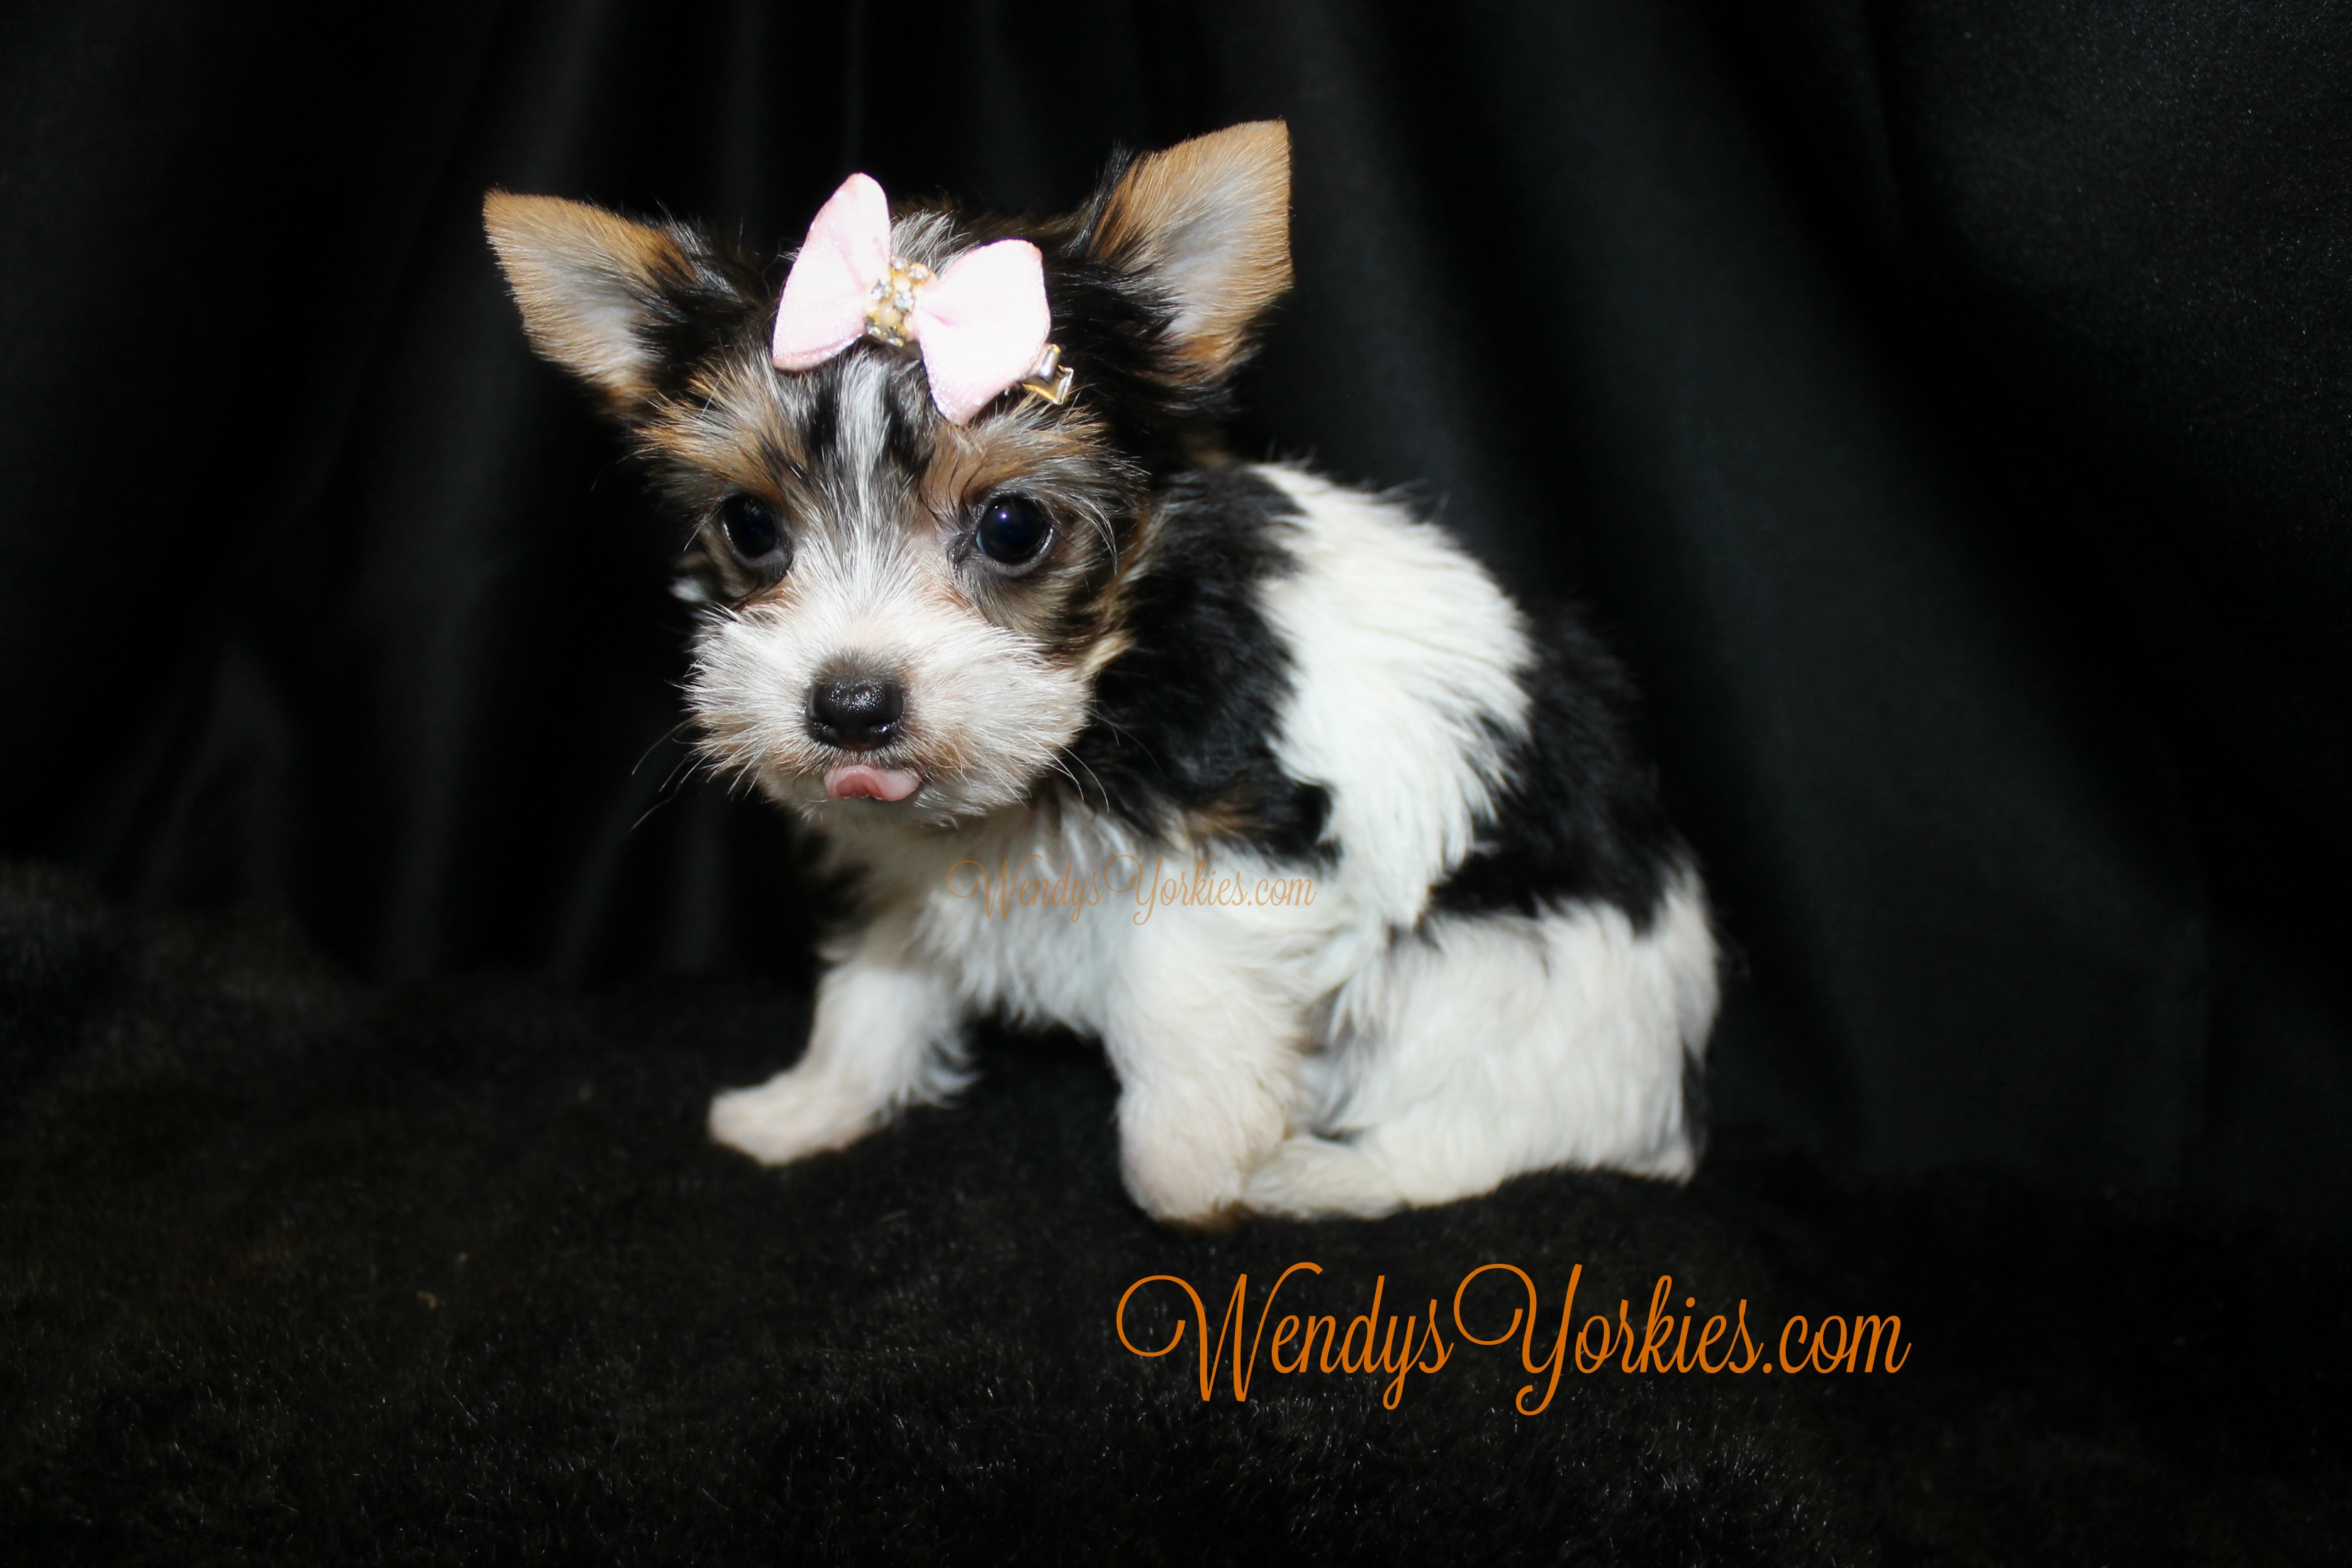 Teacup Parti Yorkshire Terrier Puppy for sale, WendysYorkies, Daisy pf